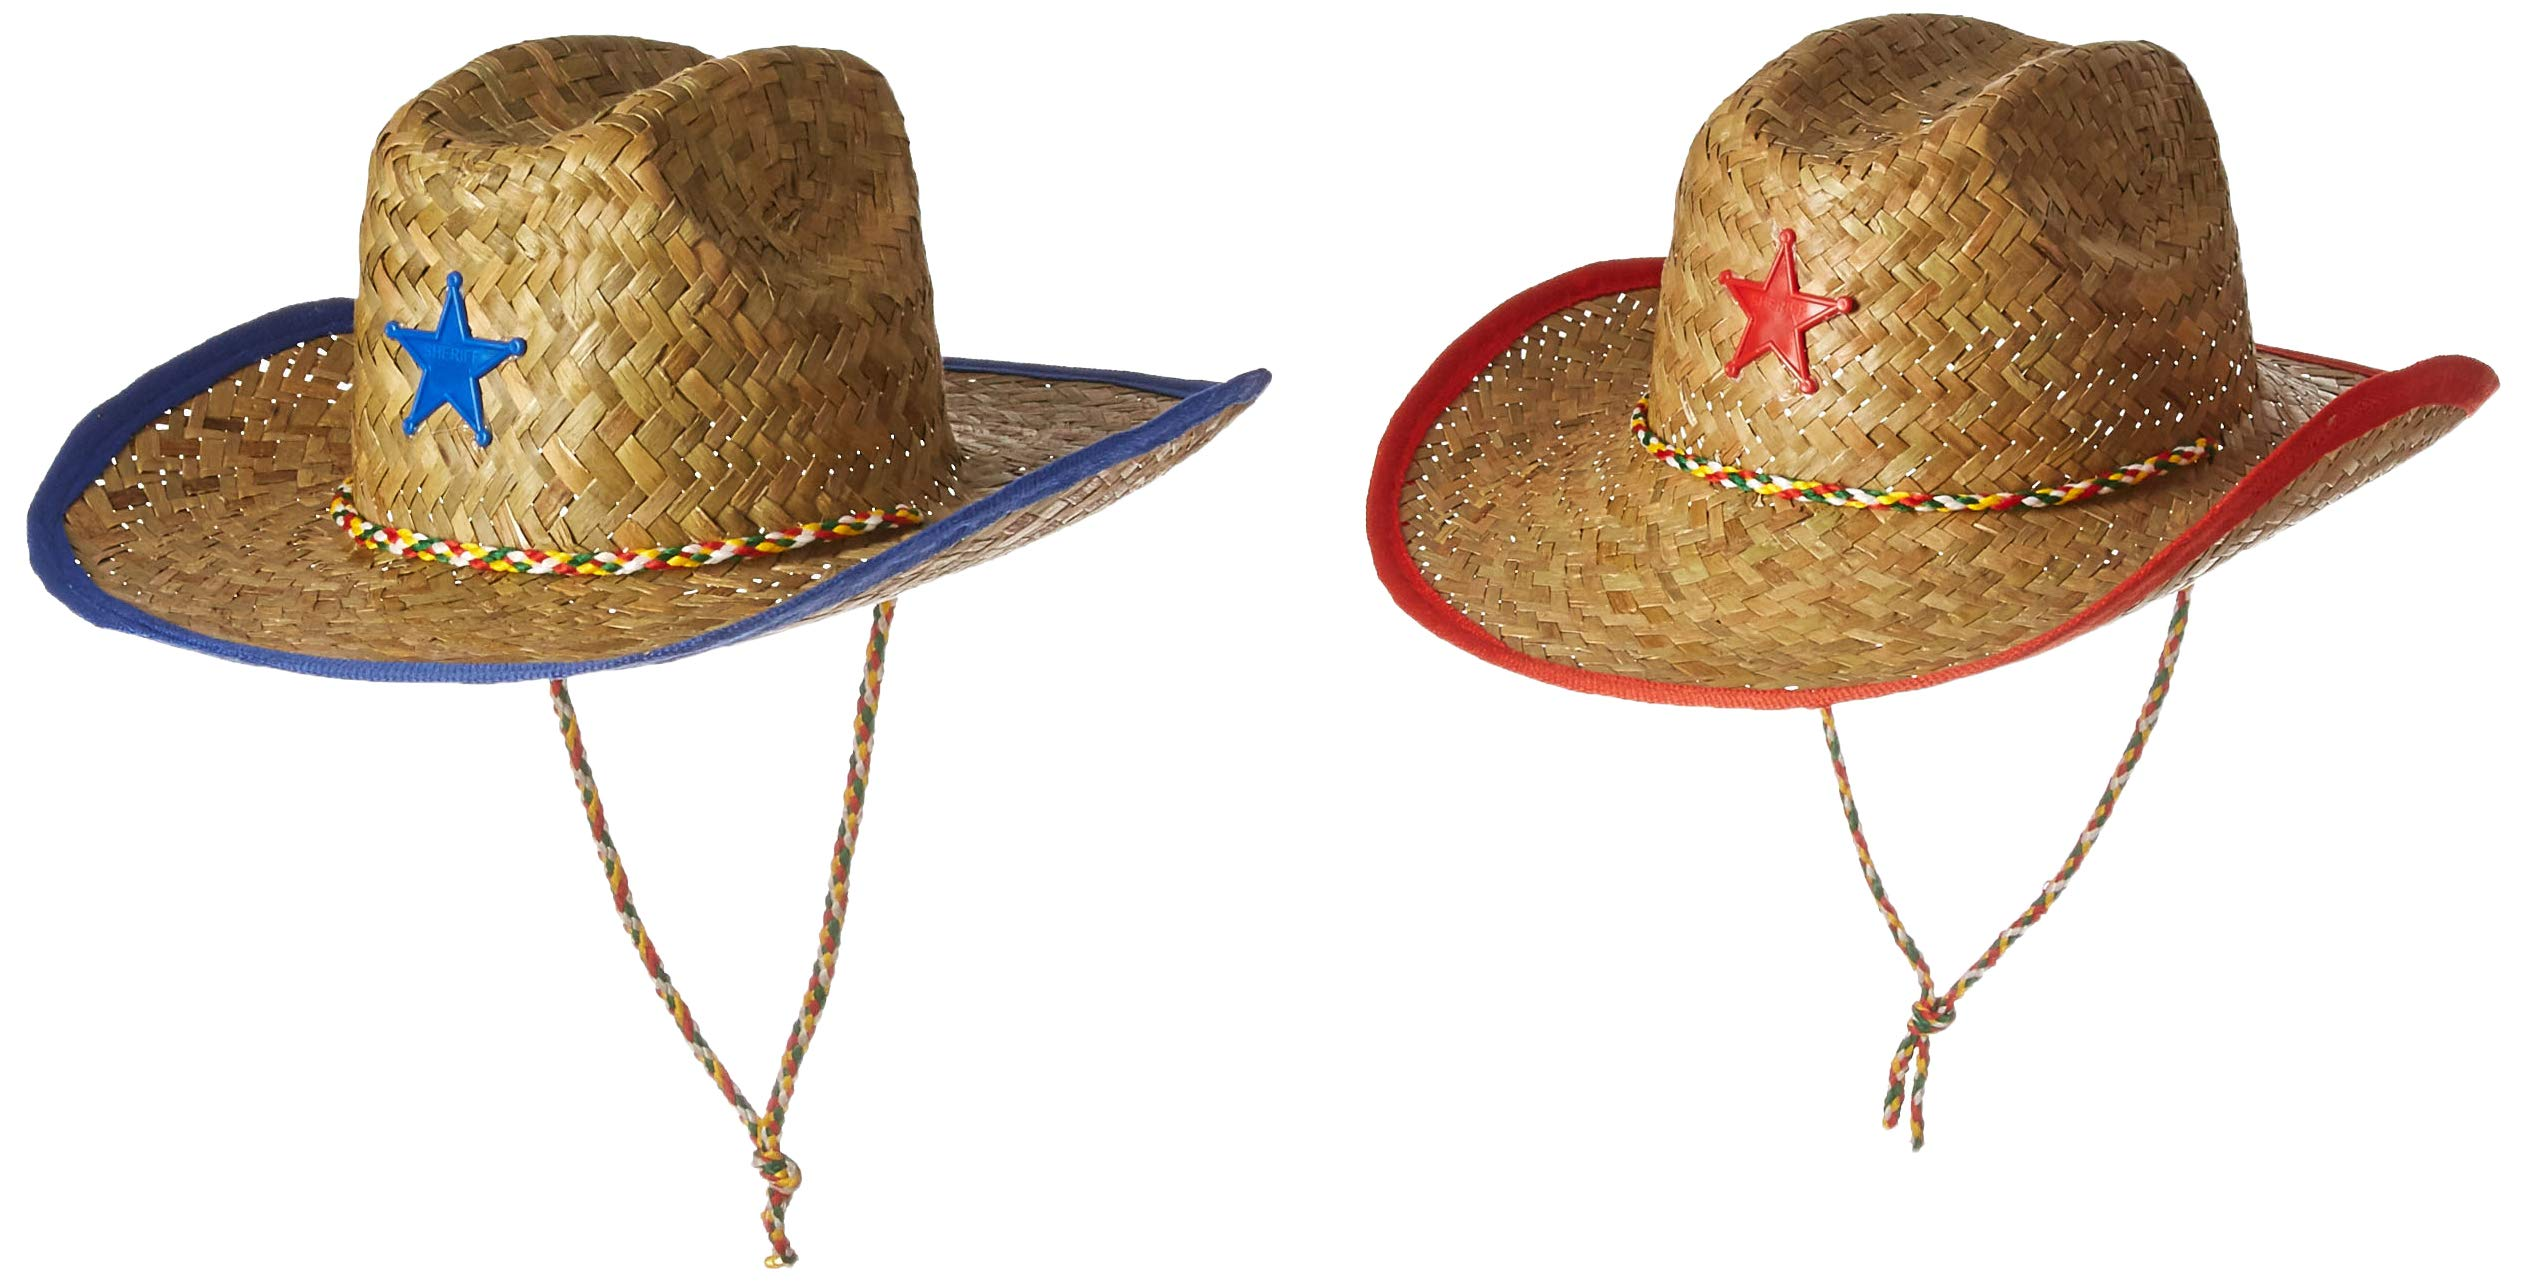 Amazon.com  Fun Express Childs Straw Cowboy Hat with Plastic Star - 12  Pieces  Toys   Games cac5846a1c4b